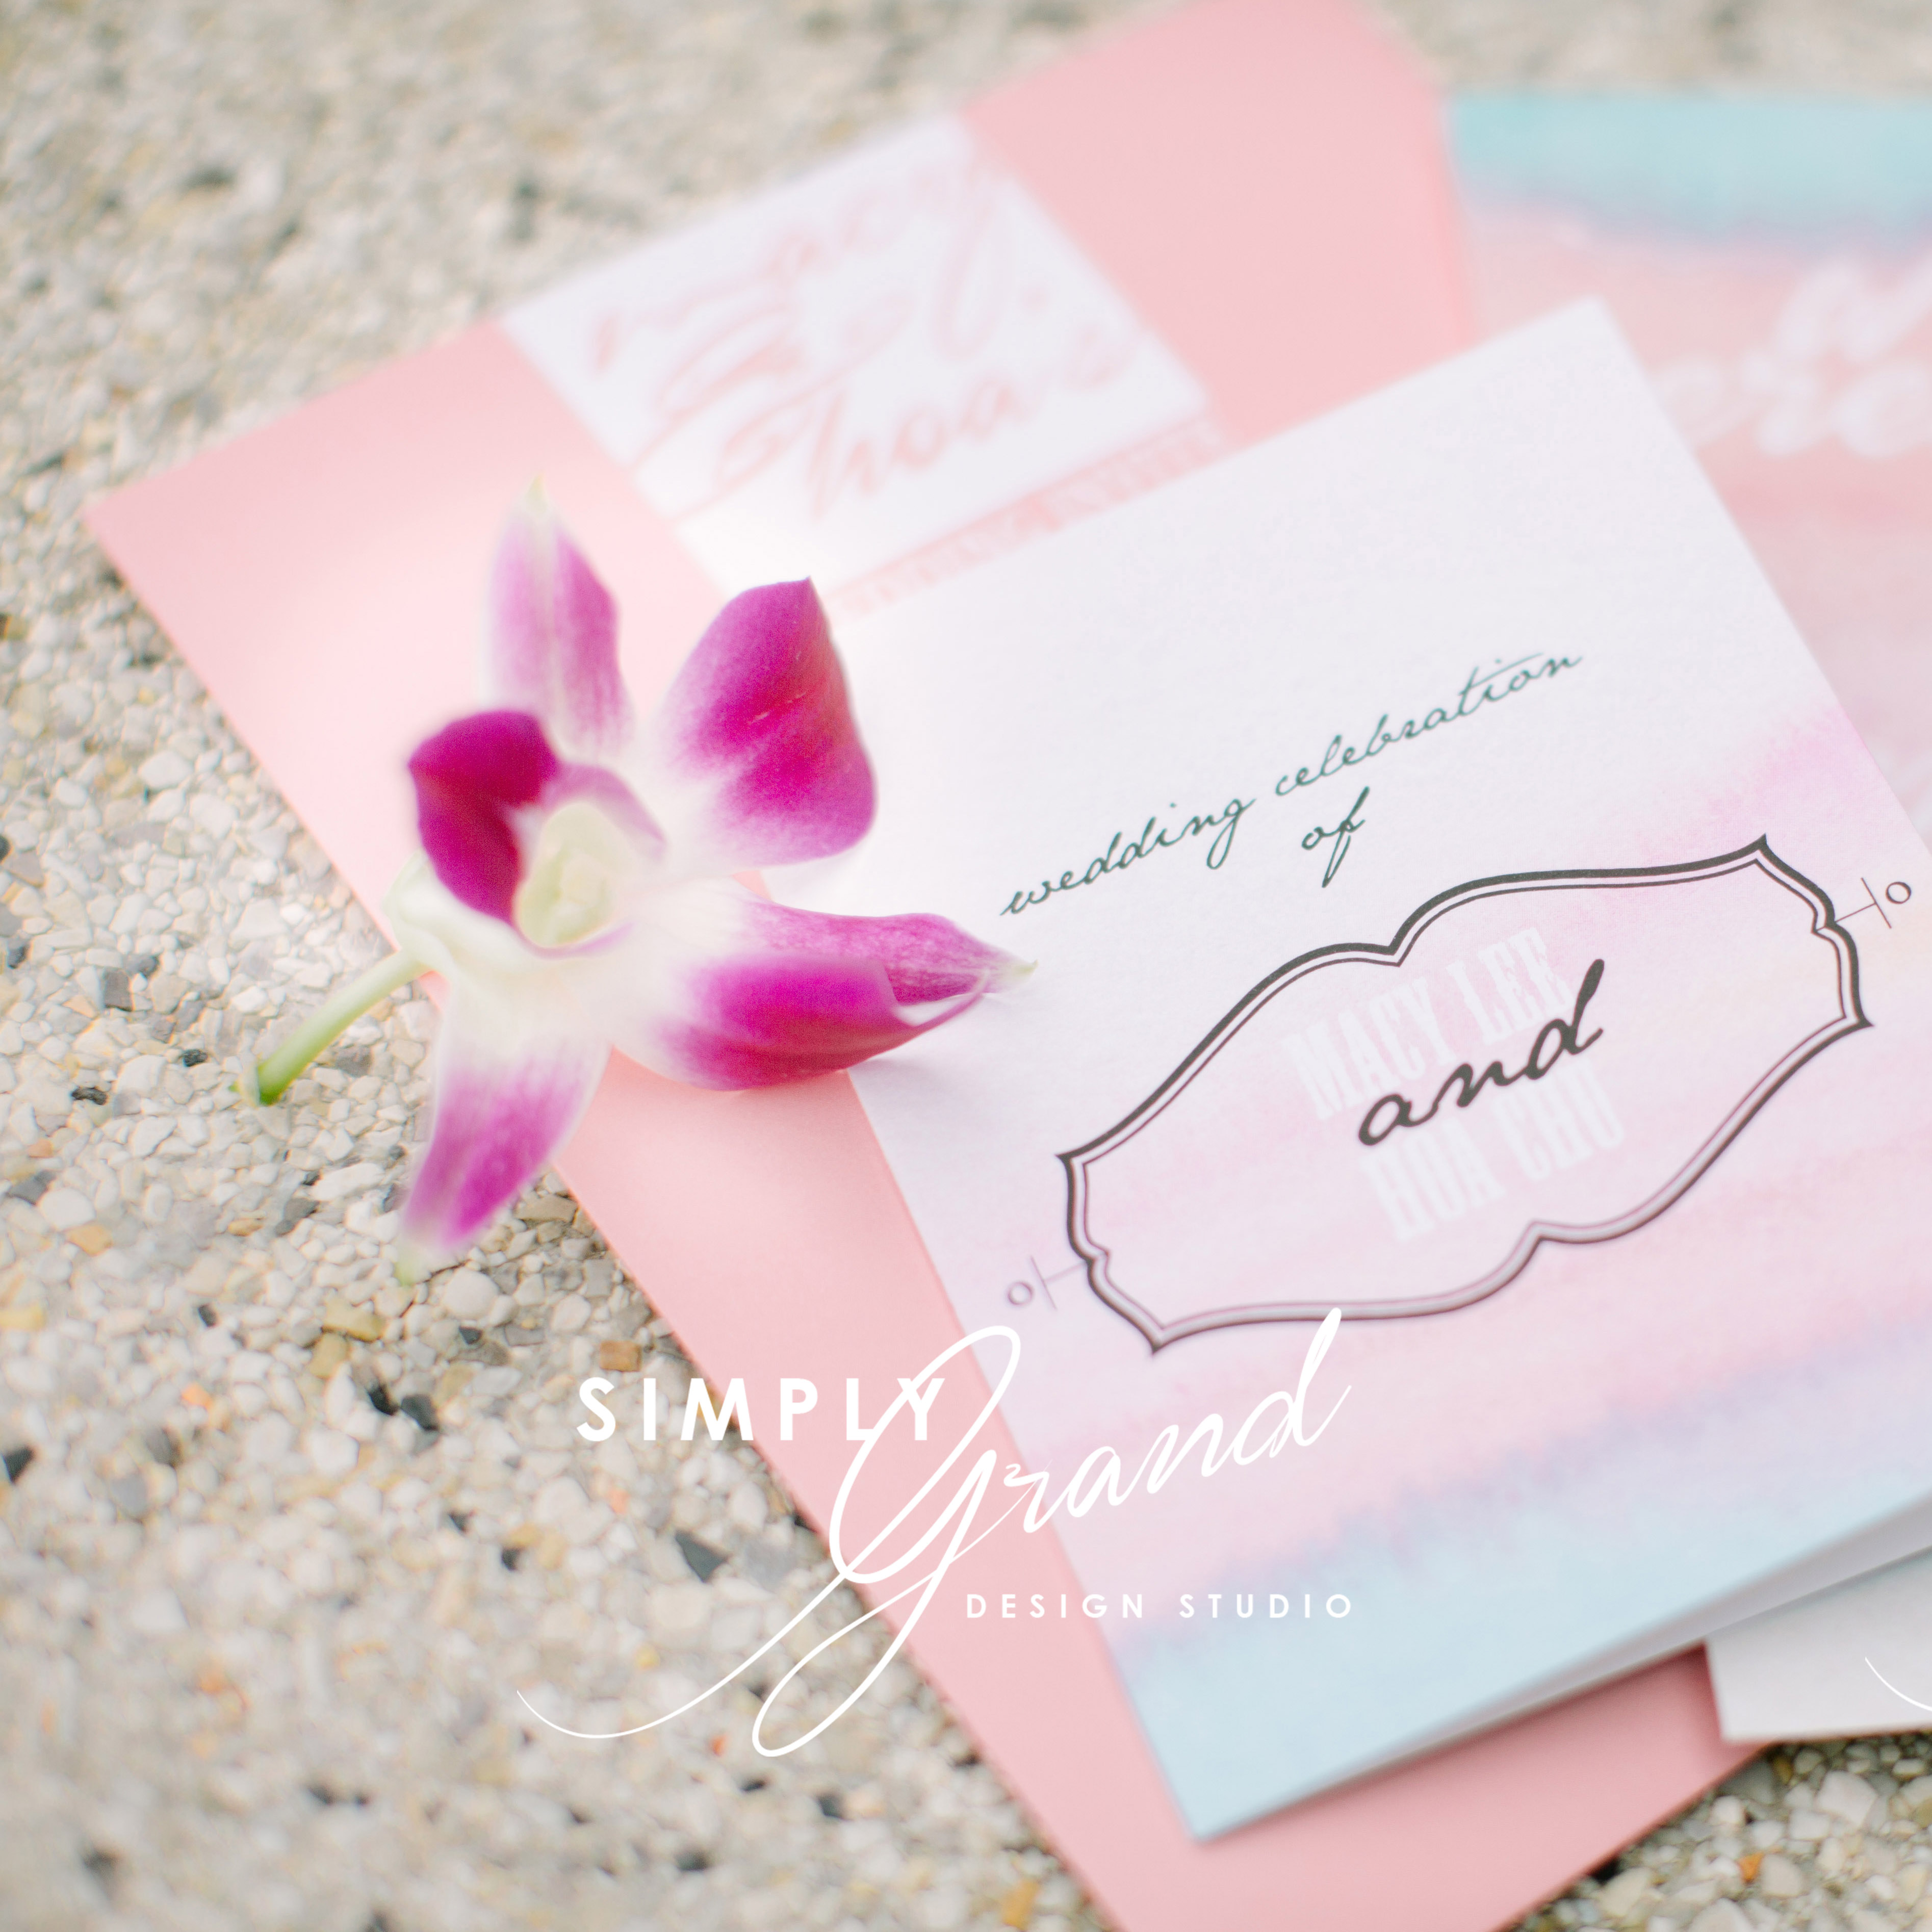 Simply_Grand_Production_Stationery_Invitation_Card_9_2